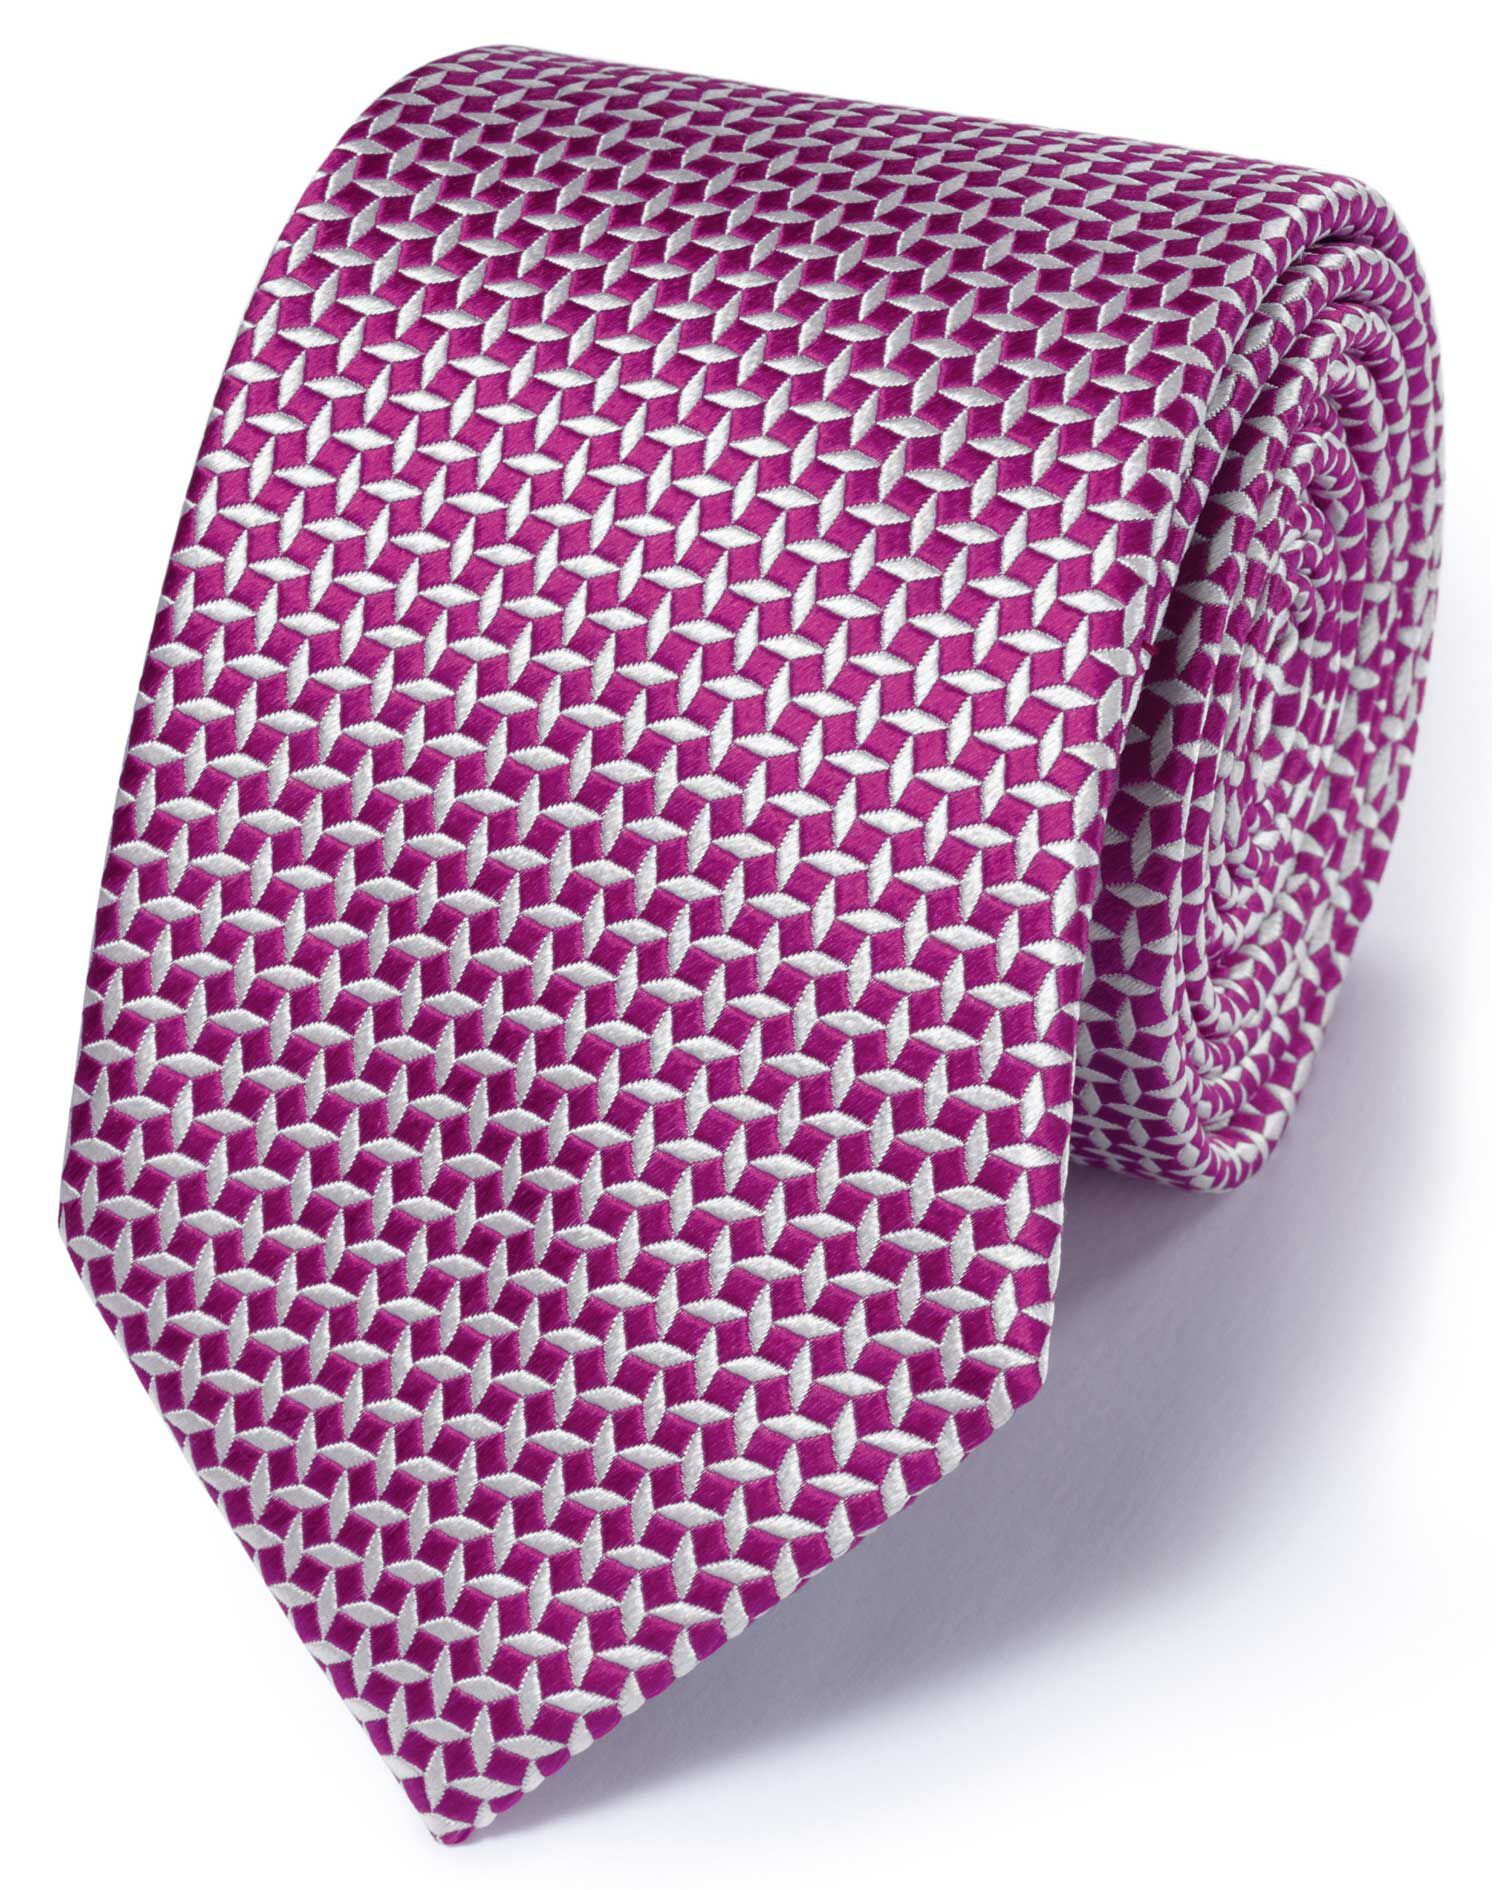 Fuchsia Silk Classic Diamond Lattice Tie Size OSFA by Charles Tyrwhitt